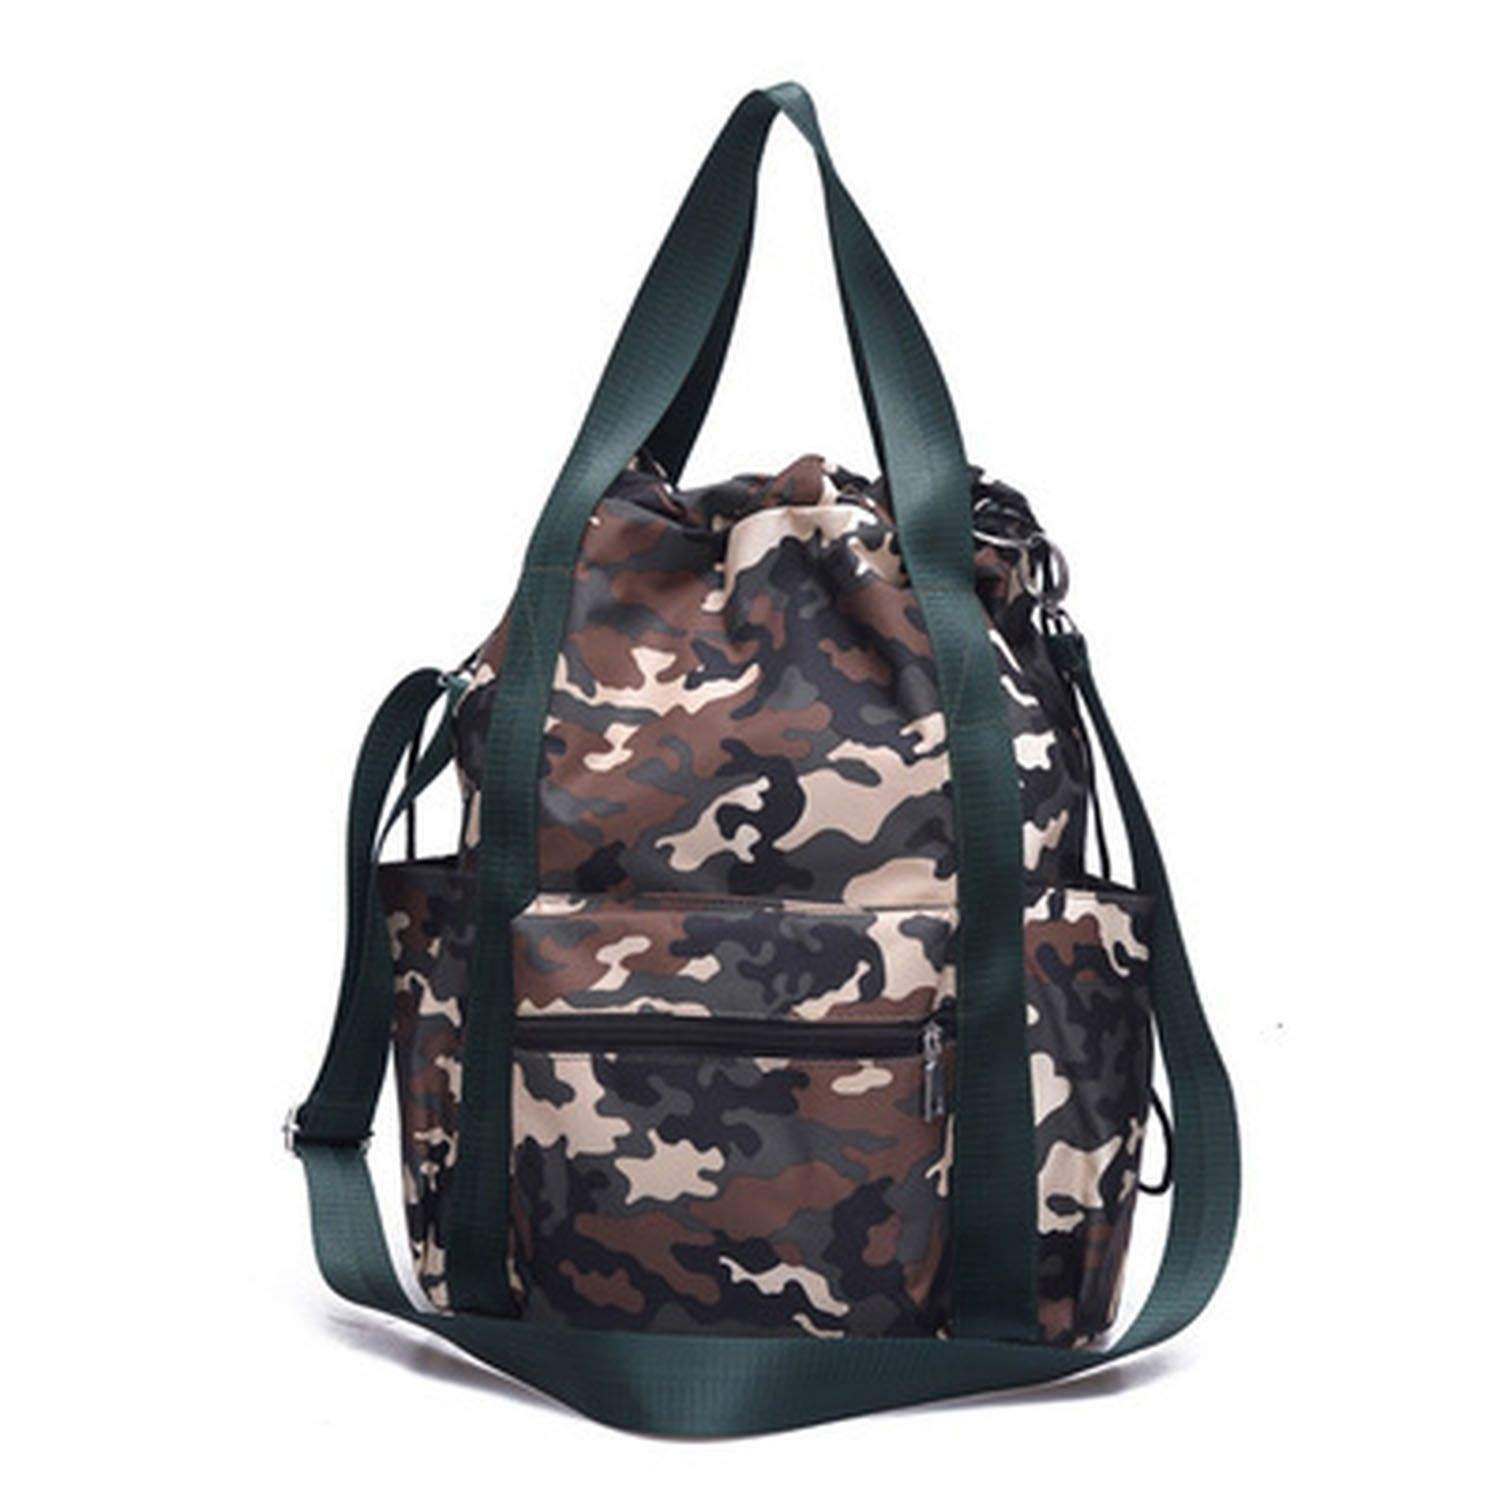 Women Drawstring Backpack Travel Backpack Woman Light Leisure Travel Bag with Multi-Function Bag,3